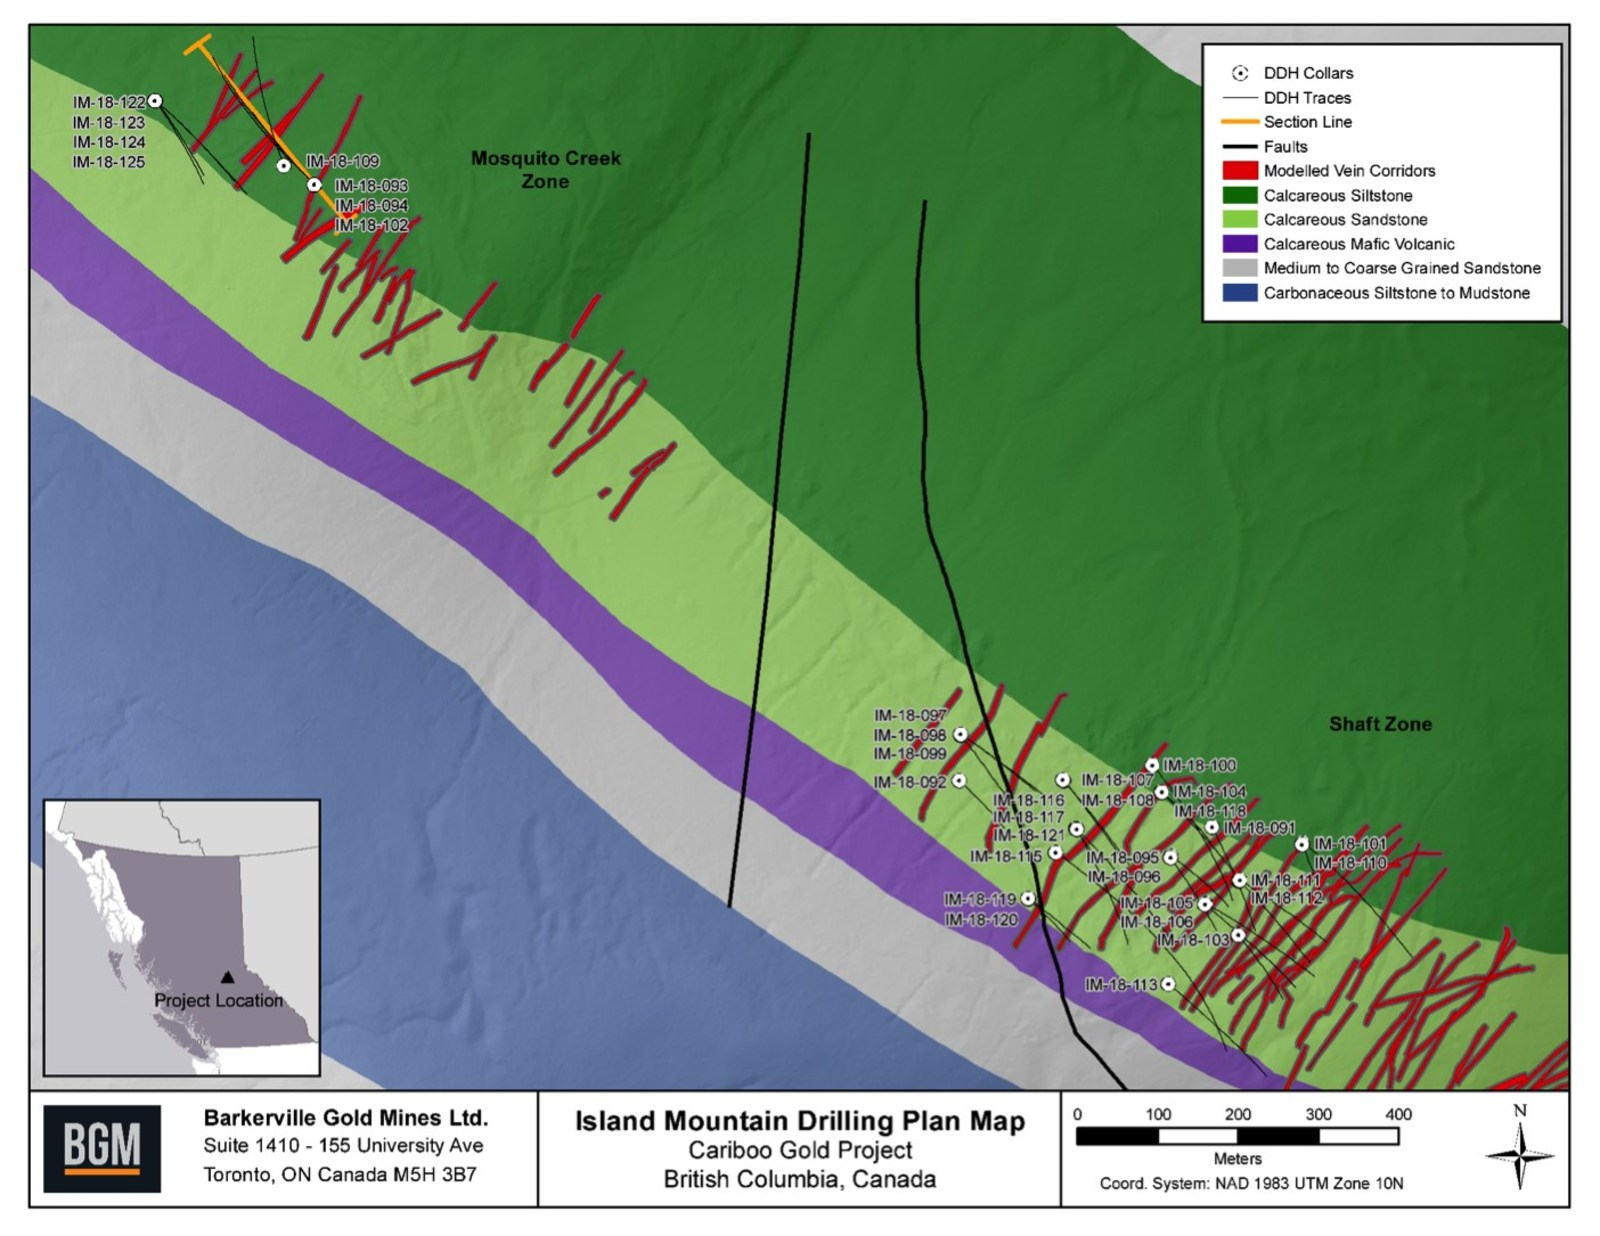 Island Mountain Drilling Plan Map